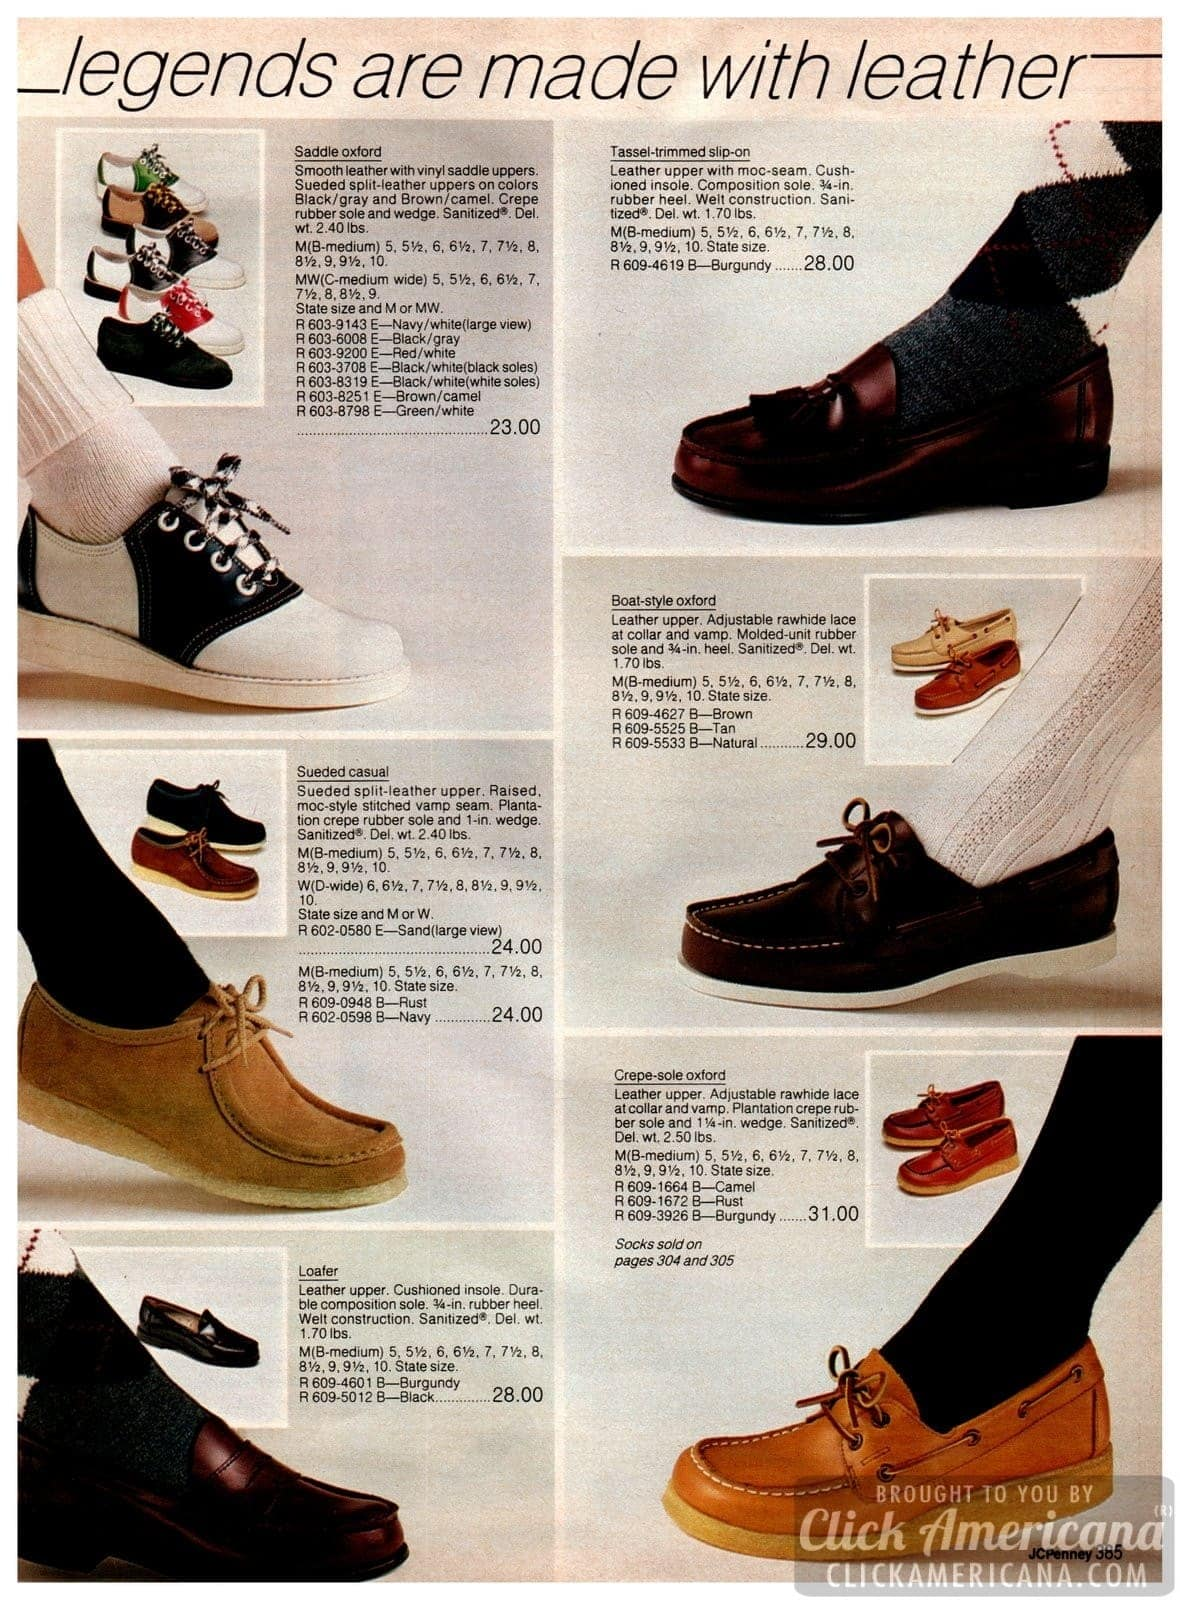 Classic saddle shoes, suede casual moccasins, penny loafers